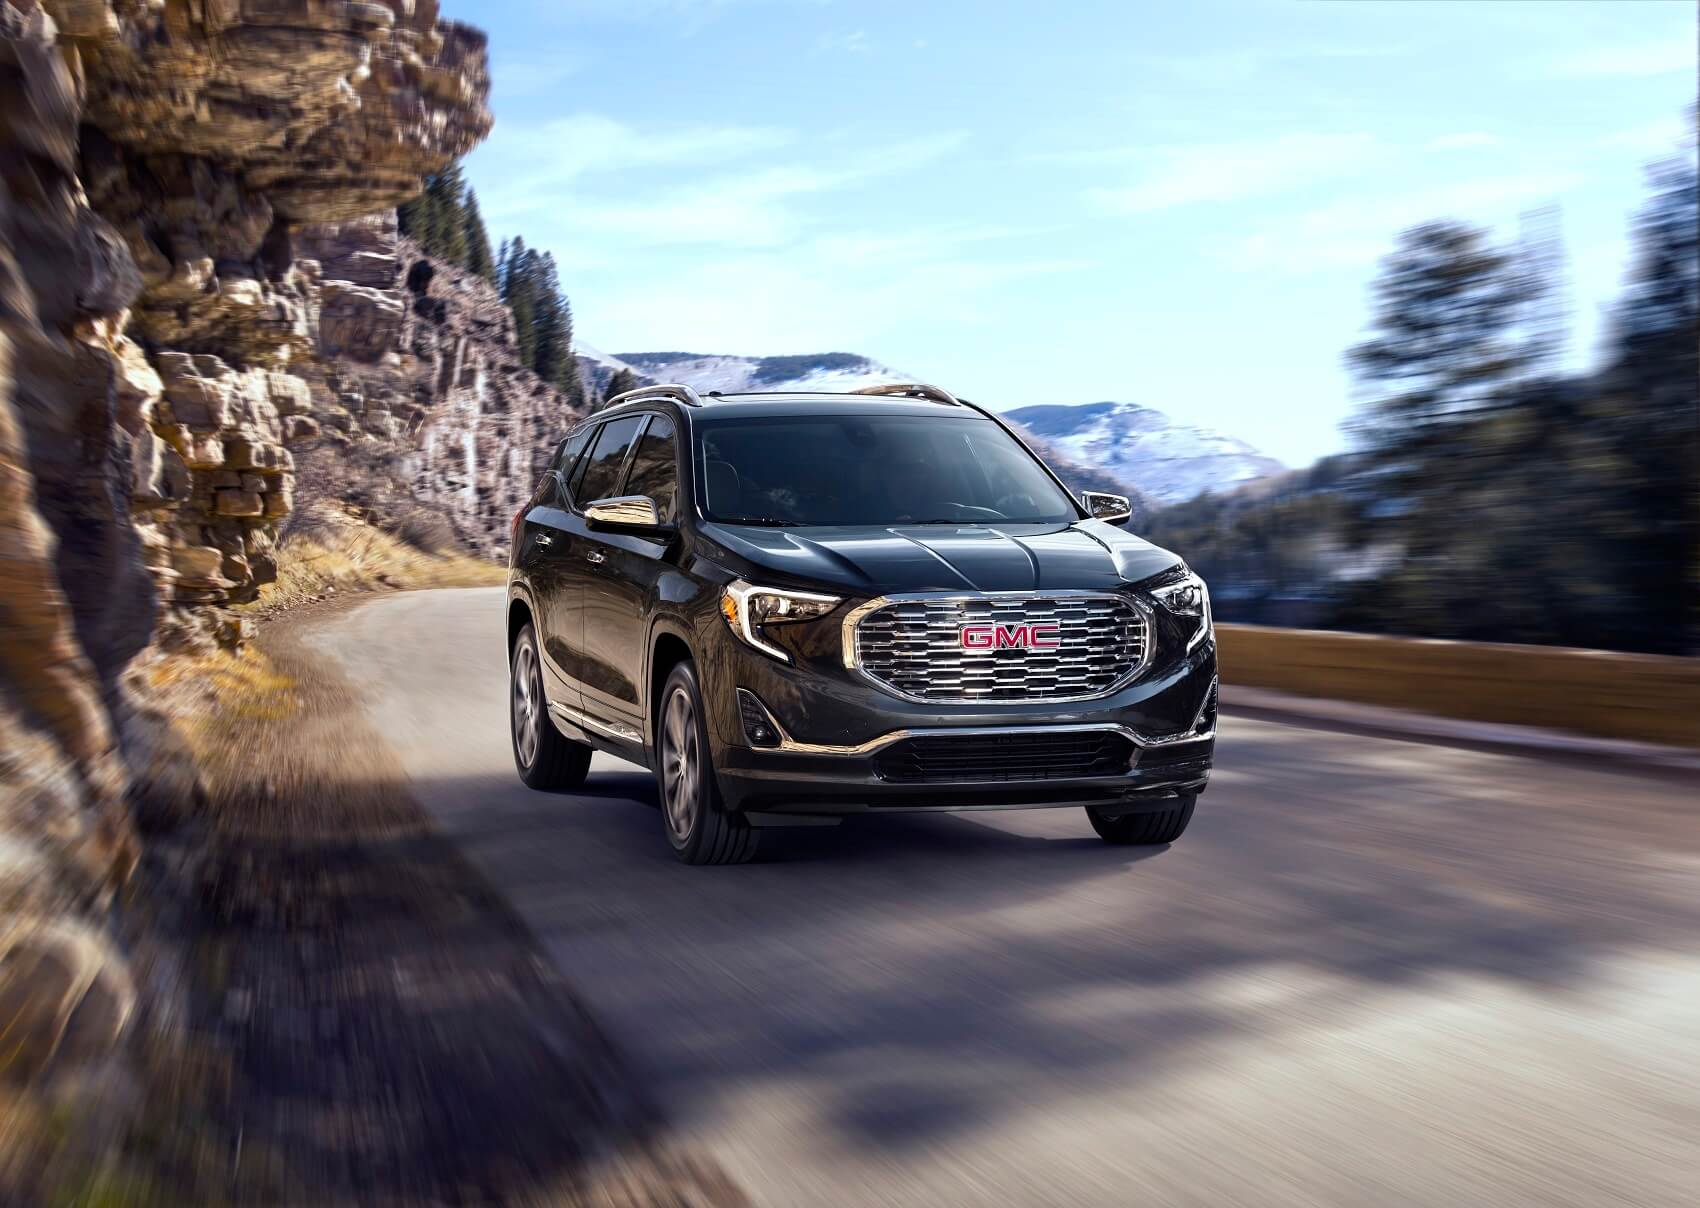 GMC Terrain Reviews Statesboro Georgia